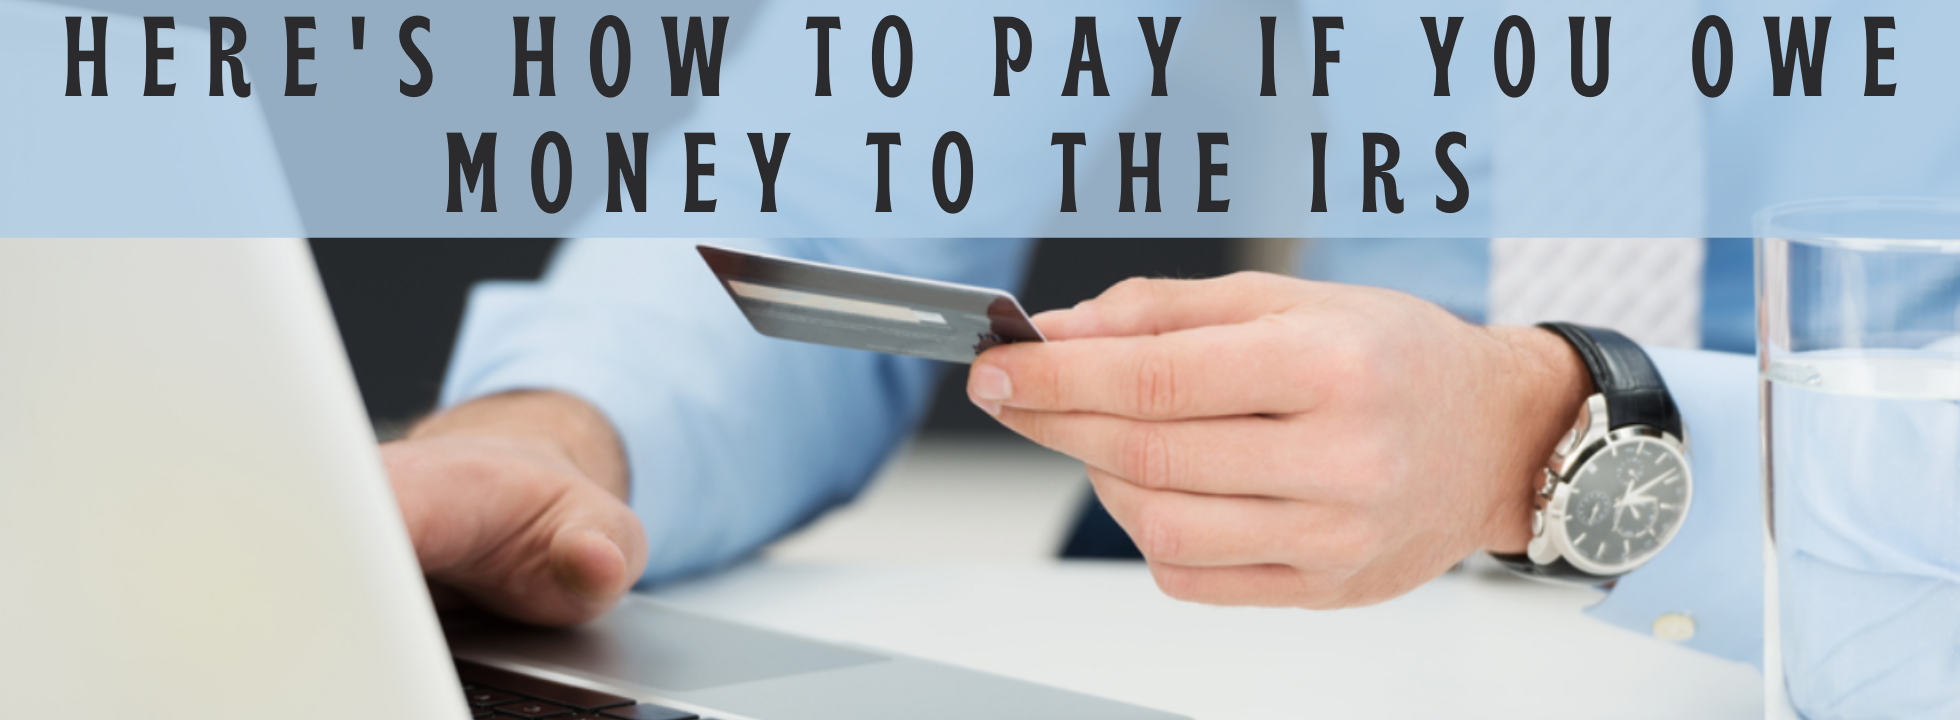 How to Pay the IRS